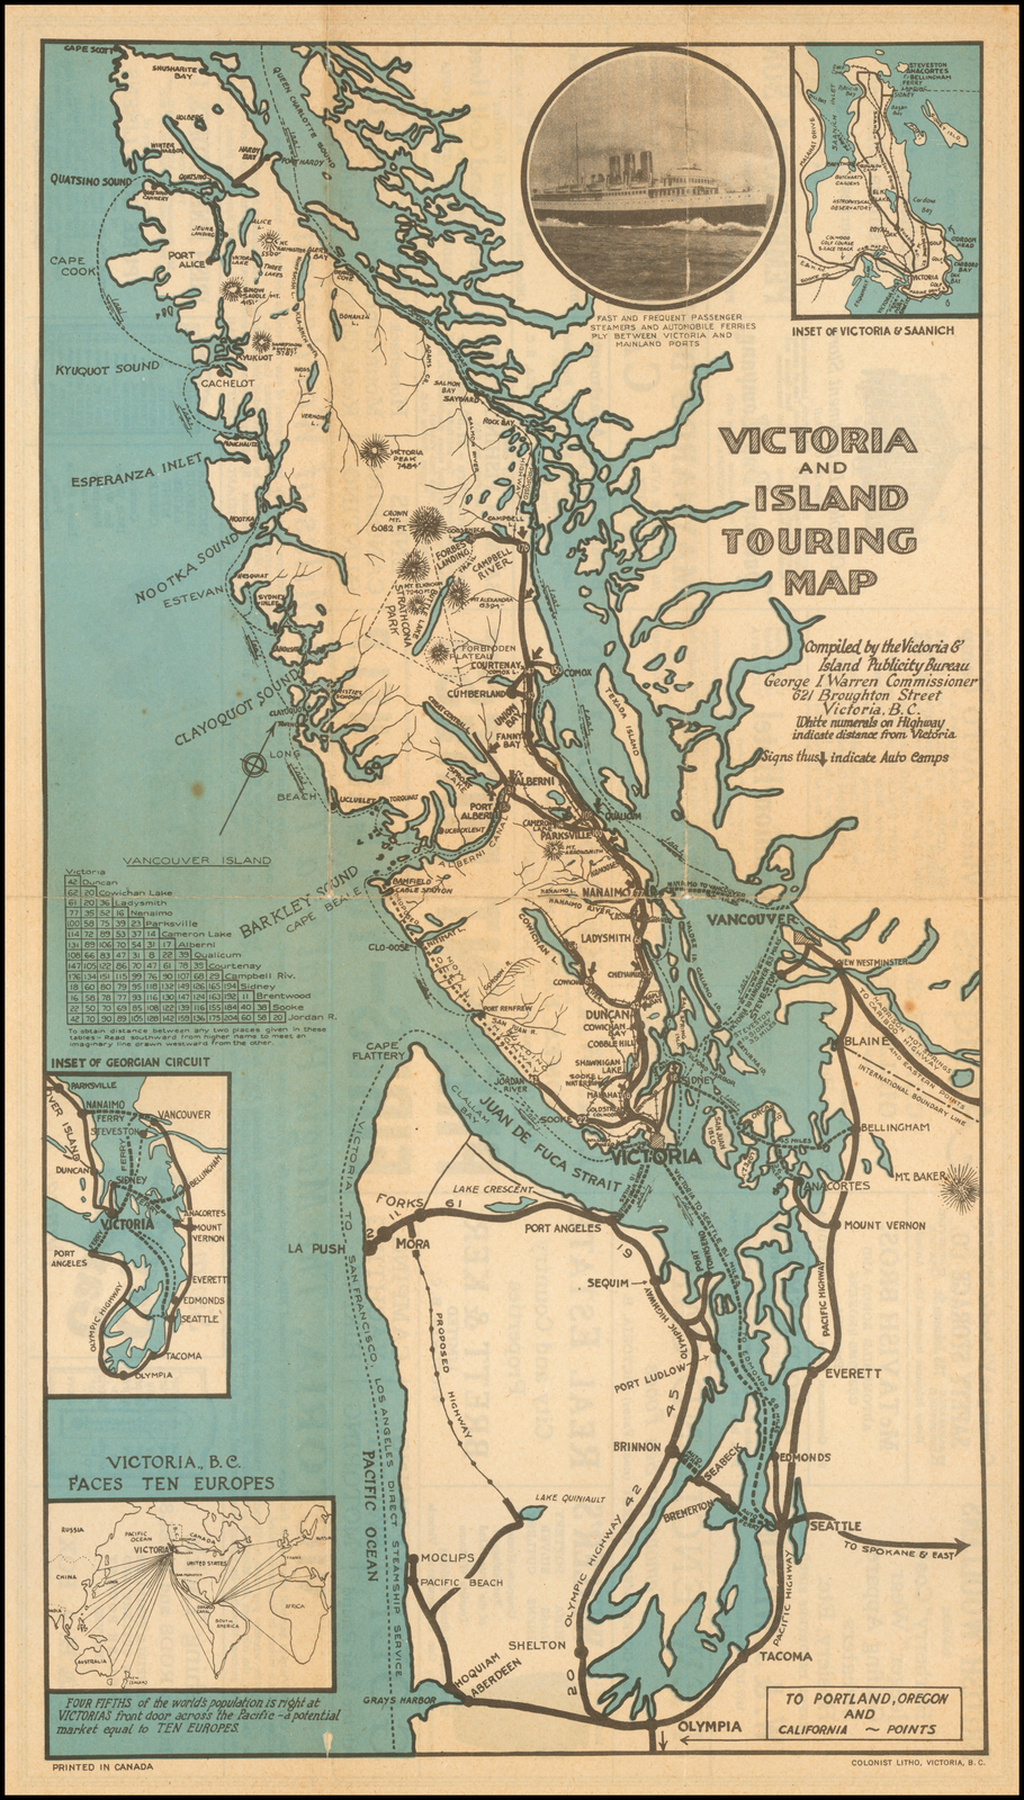 Victoria and Island Touring Map By Victoria & Island Publicity Bureau